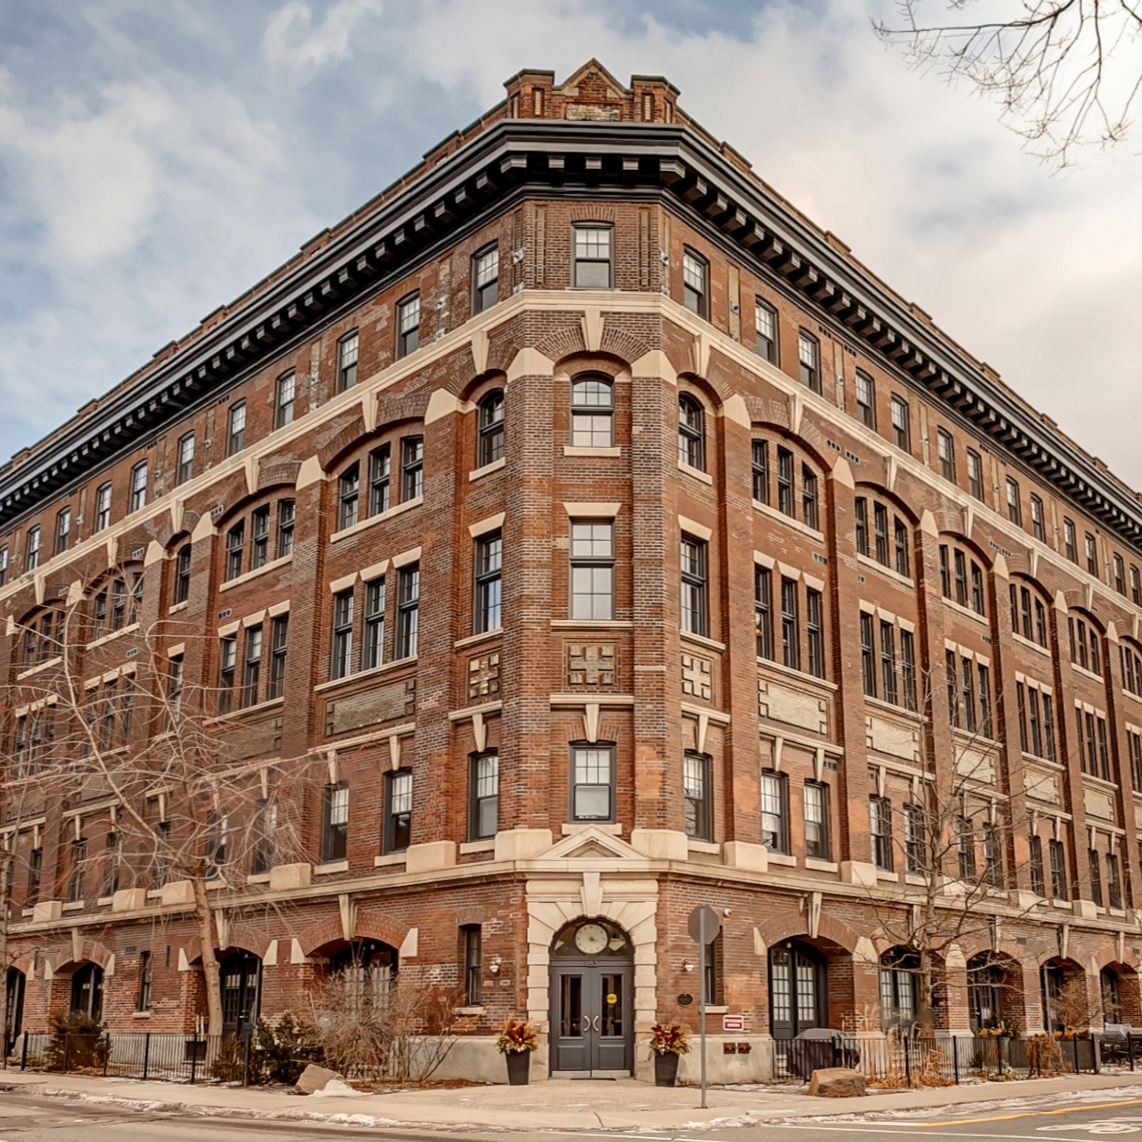 SOLD IN 1 WEEK ON OFFER NIGHT   While a unit in Argyle Lofts is always worth a head turn, this one is one of the best suites in the building. Accessible by private street level entrance, its interior is beautifully warm and bright with arched windows and lofty ceiling.  183 Dovercourt Road